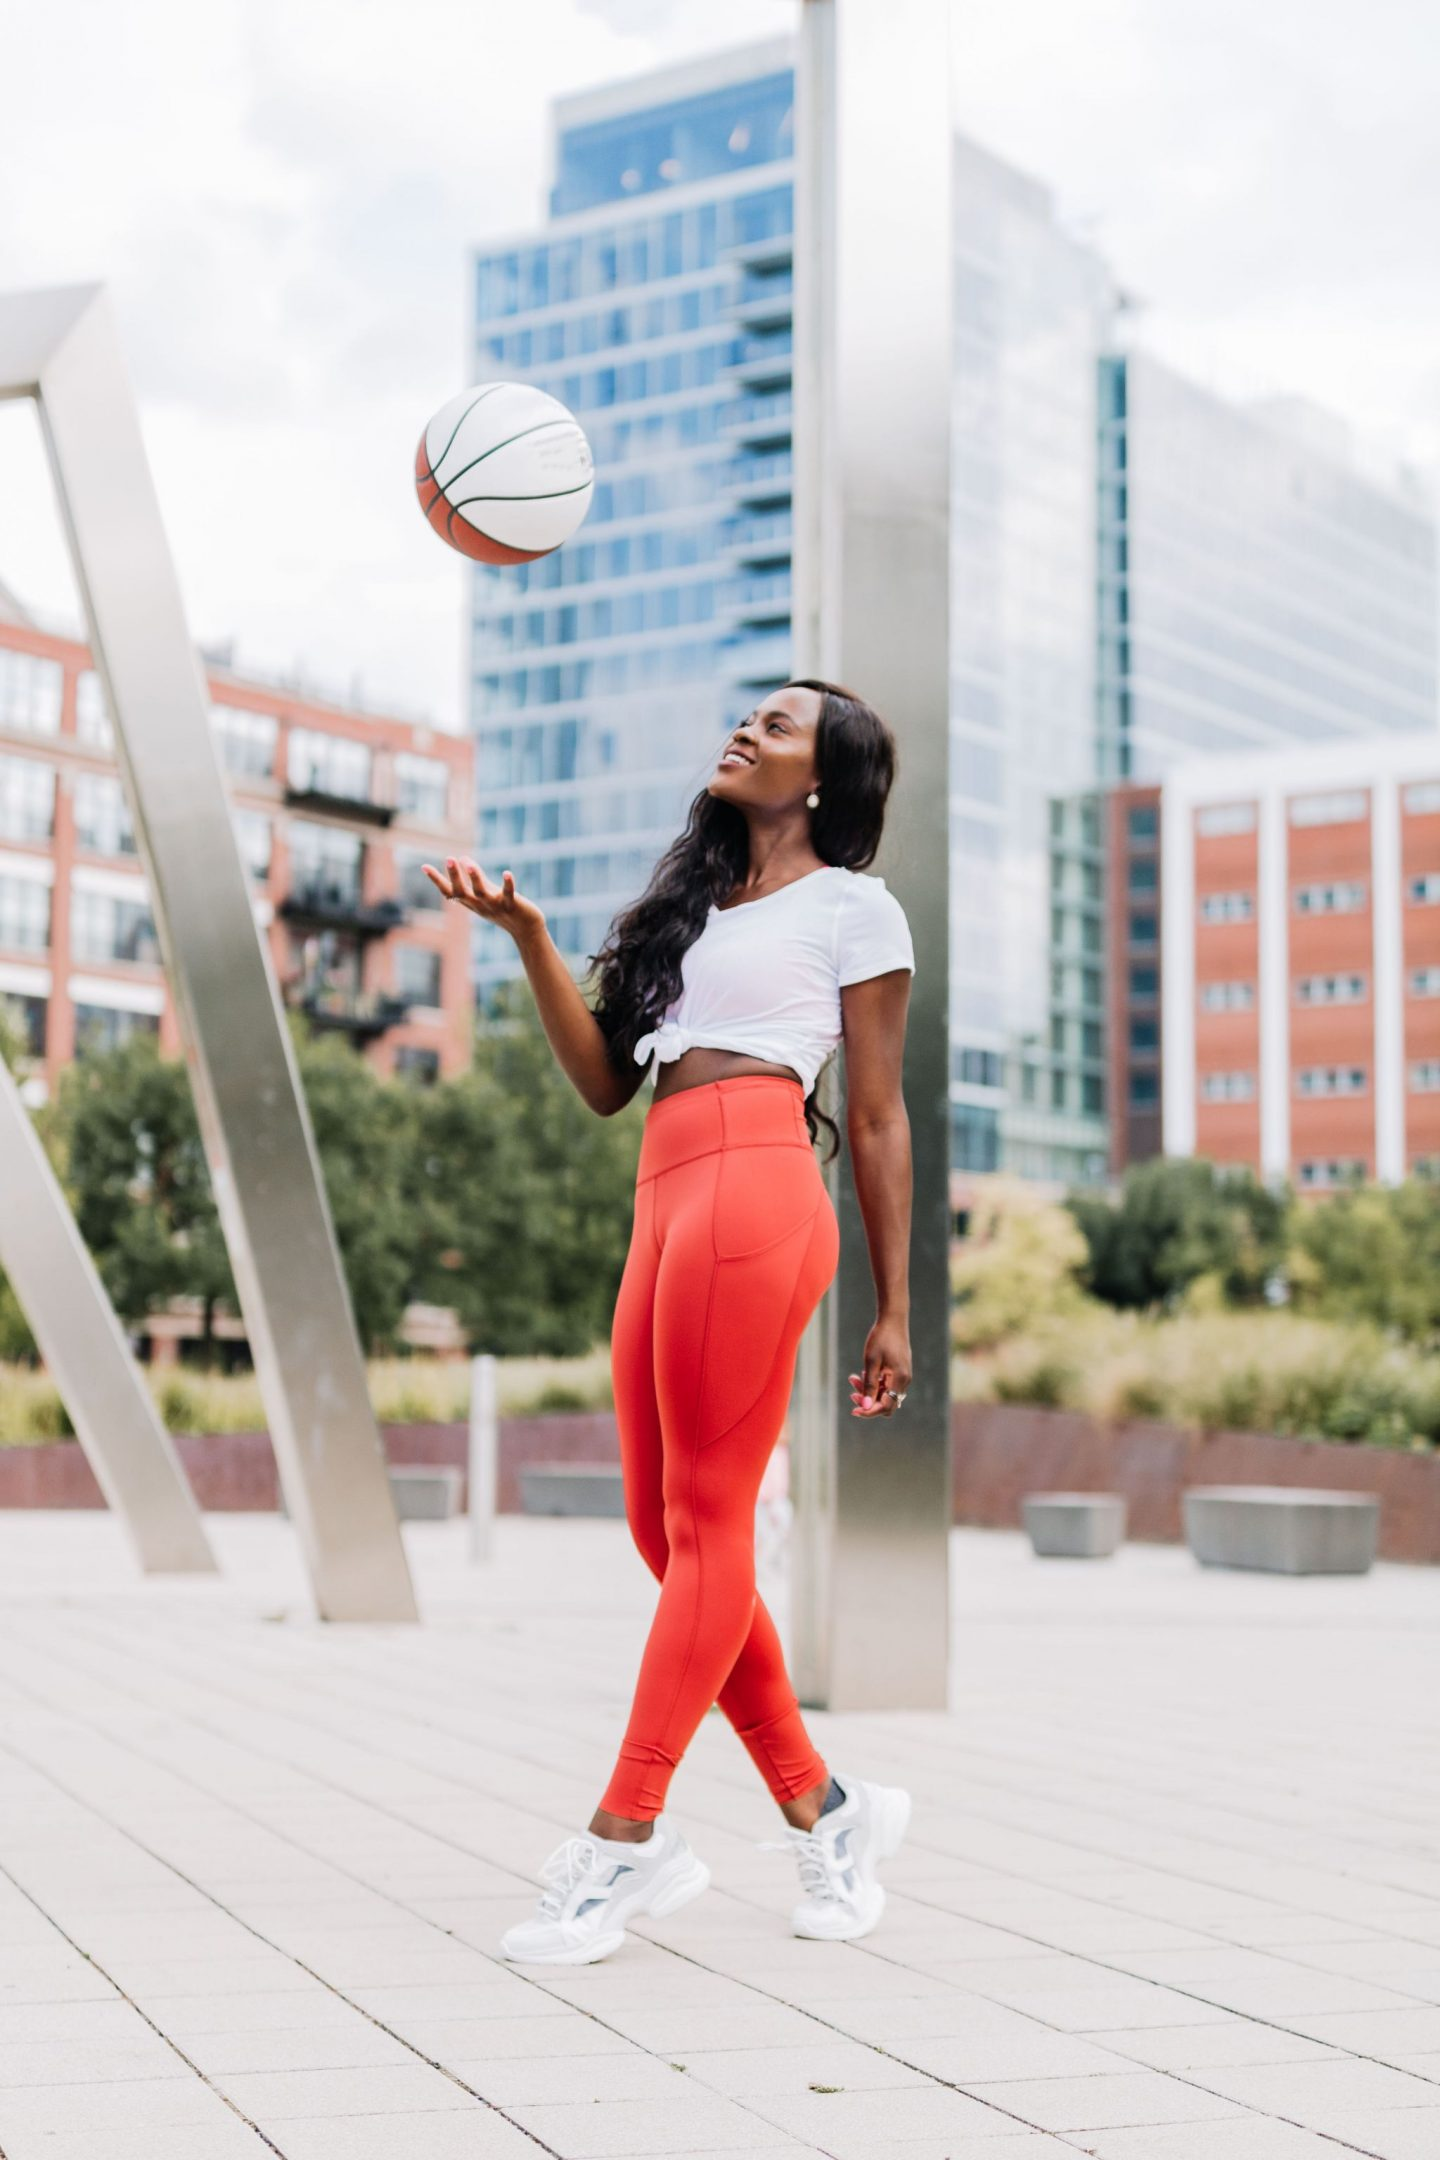 Stylish workout clothes for the gym and outdoor sports from lululemon by Cranberry Tantrums, Jenn Ibe